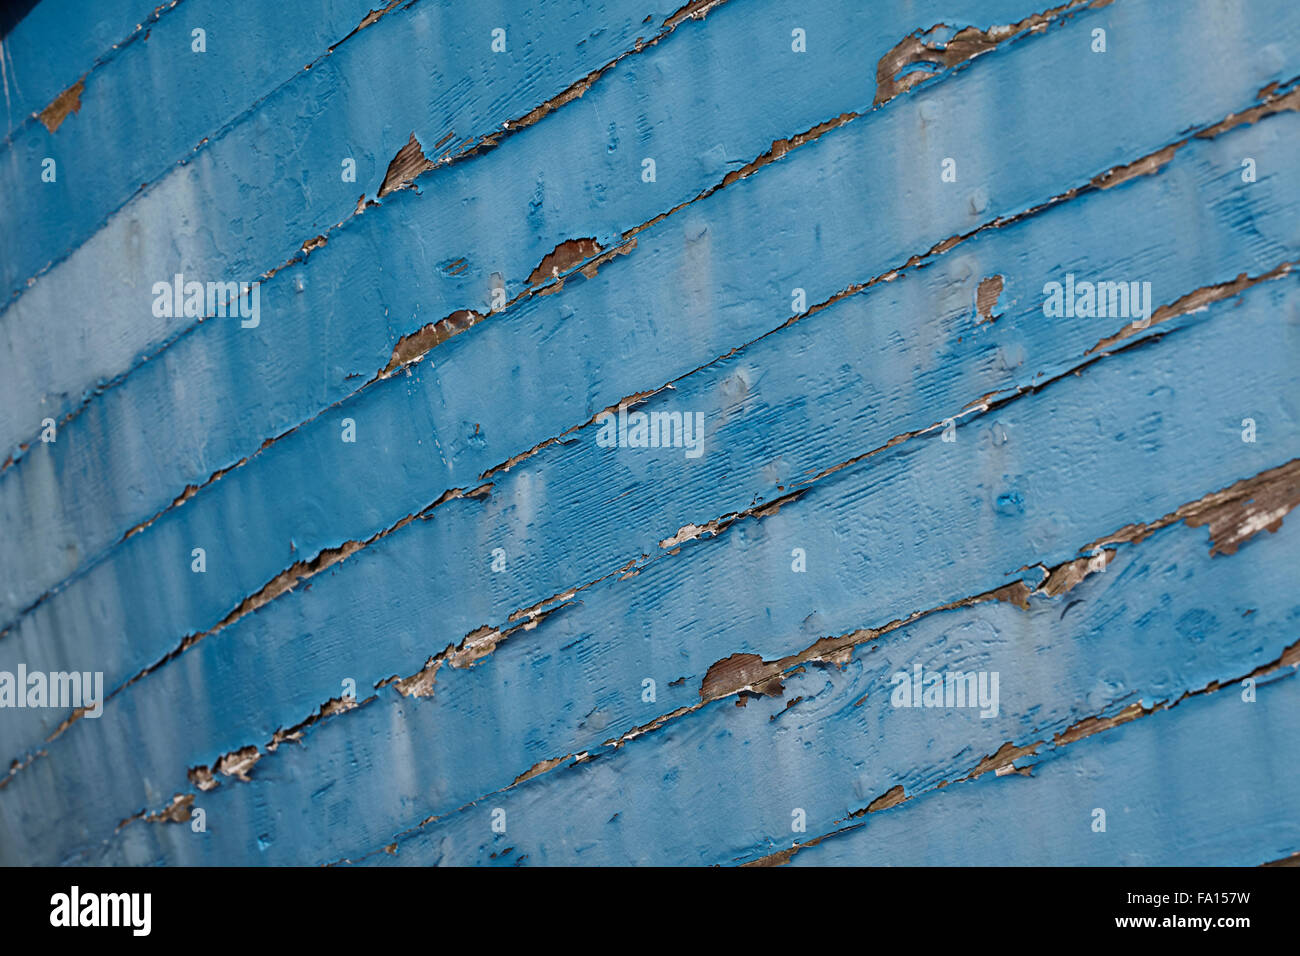 Peeling paint on an old boat - Stock Image